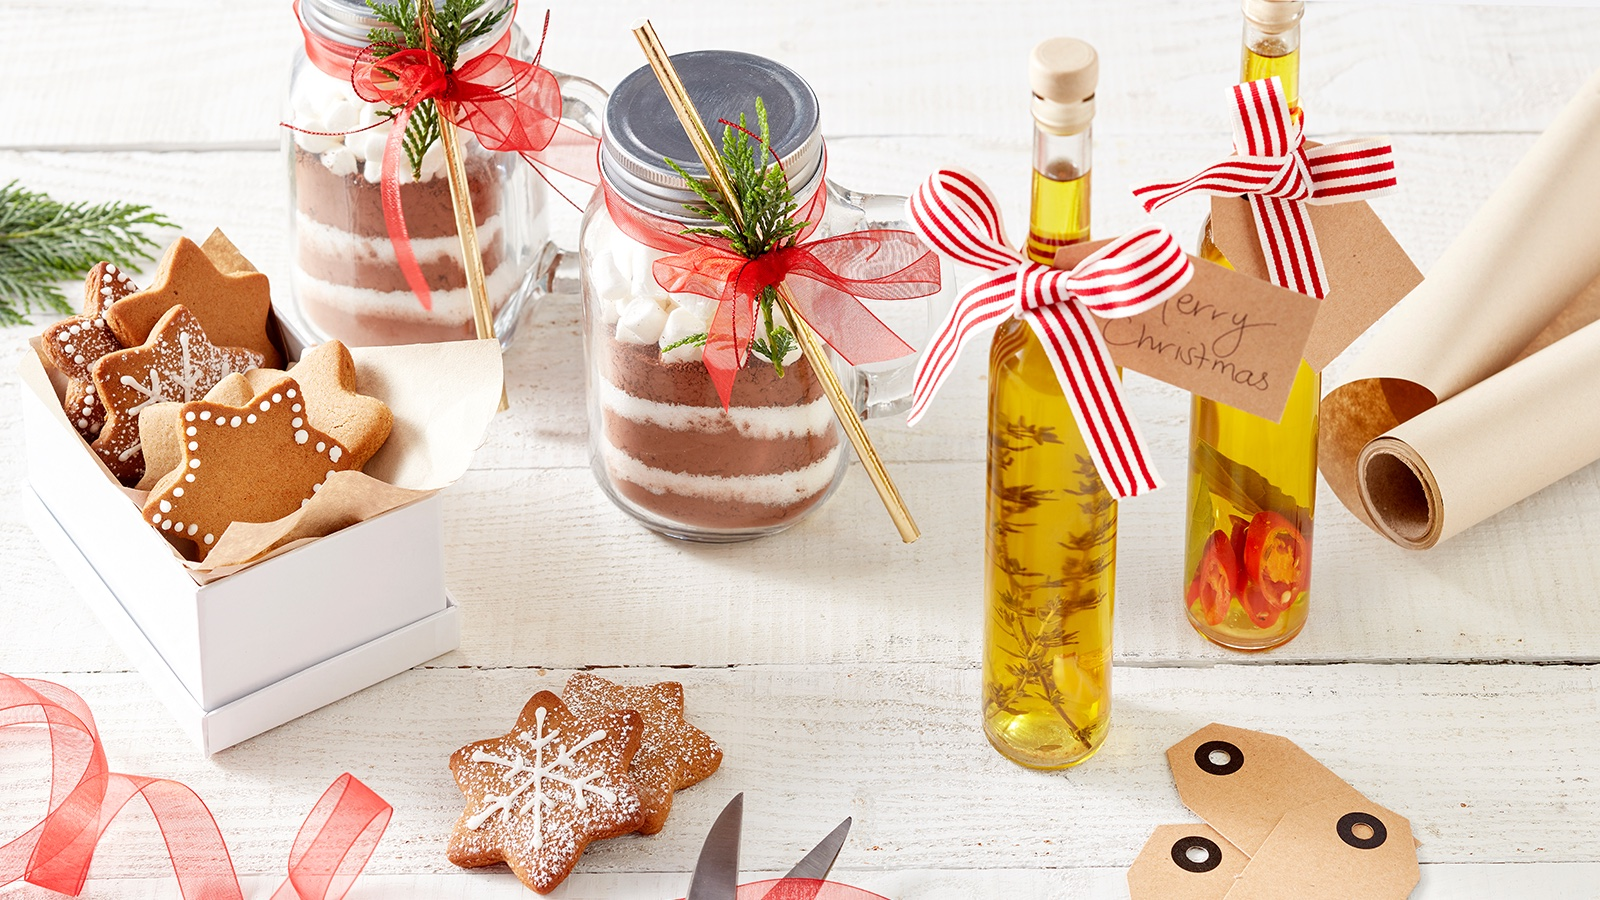 Edible Christmas gifts you can make at home - The NEFF Kitchen